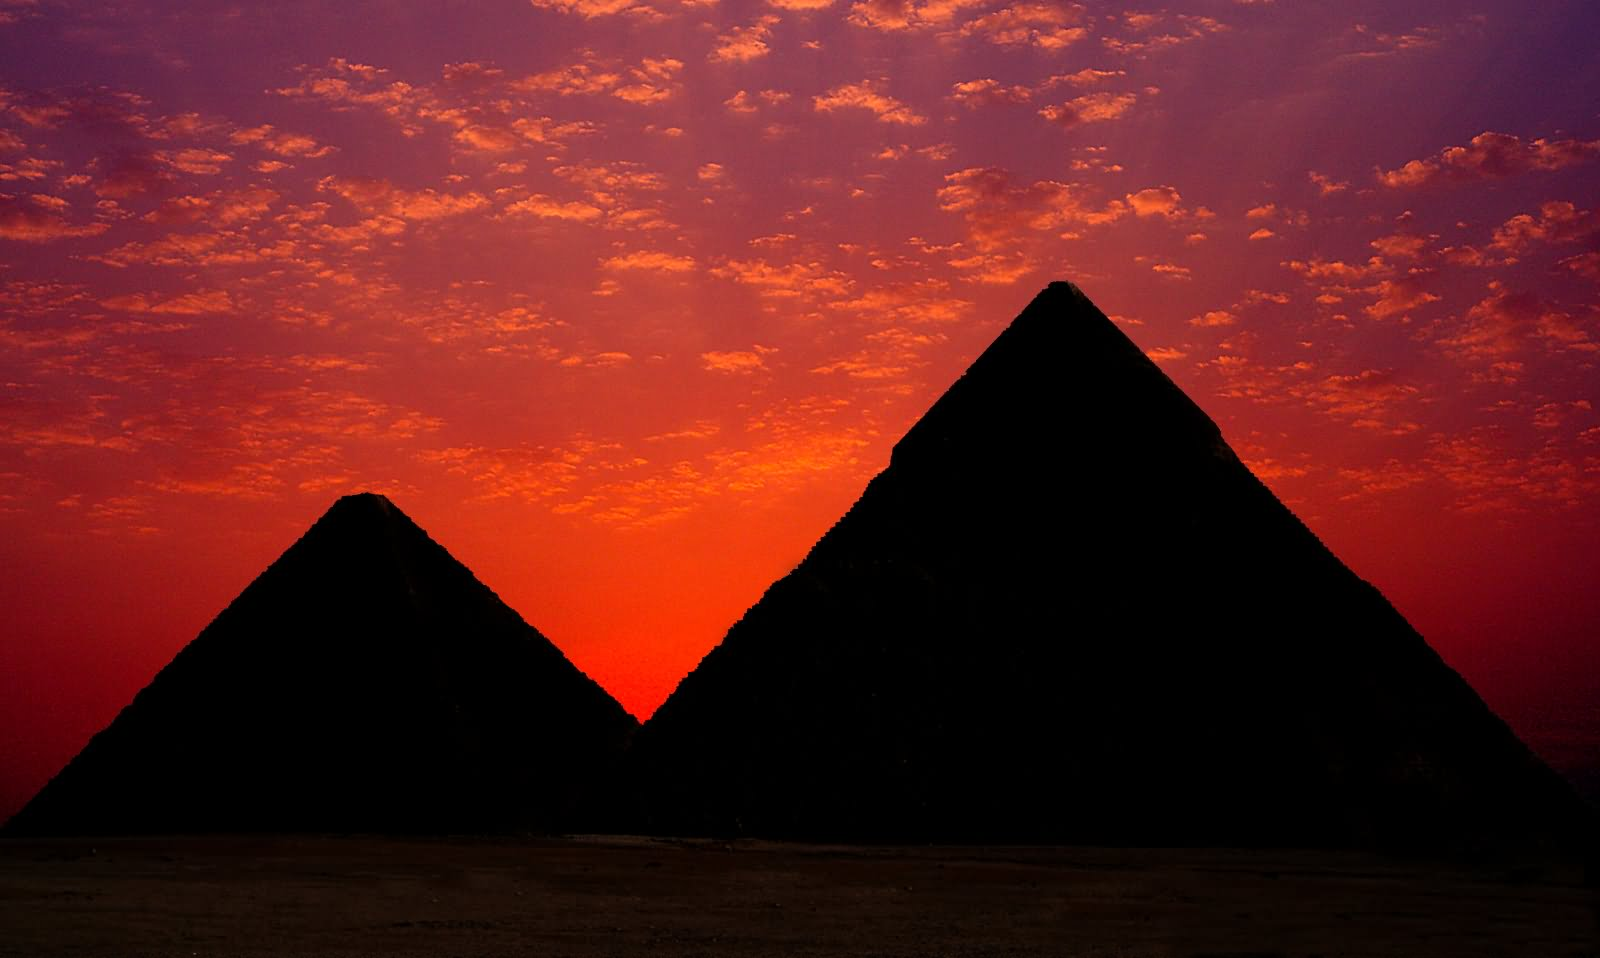 Adorable Silhouette View Of Egyptian Pyramids During Sunset